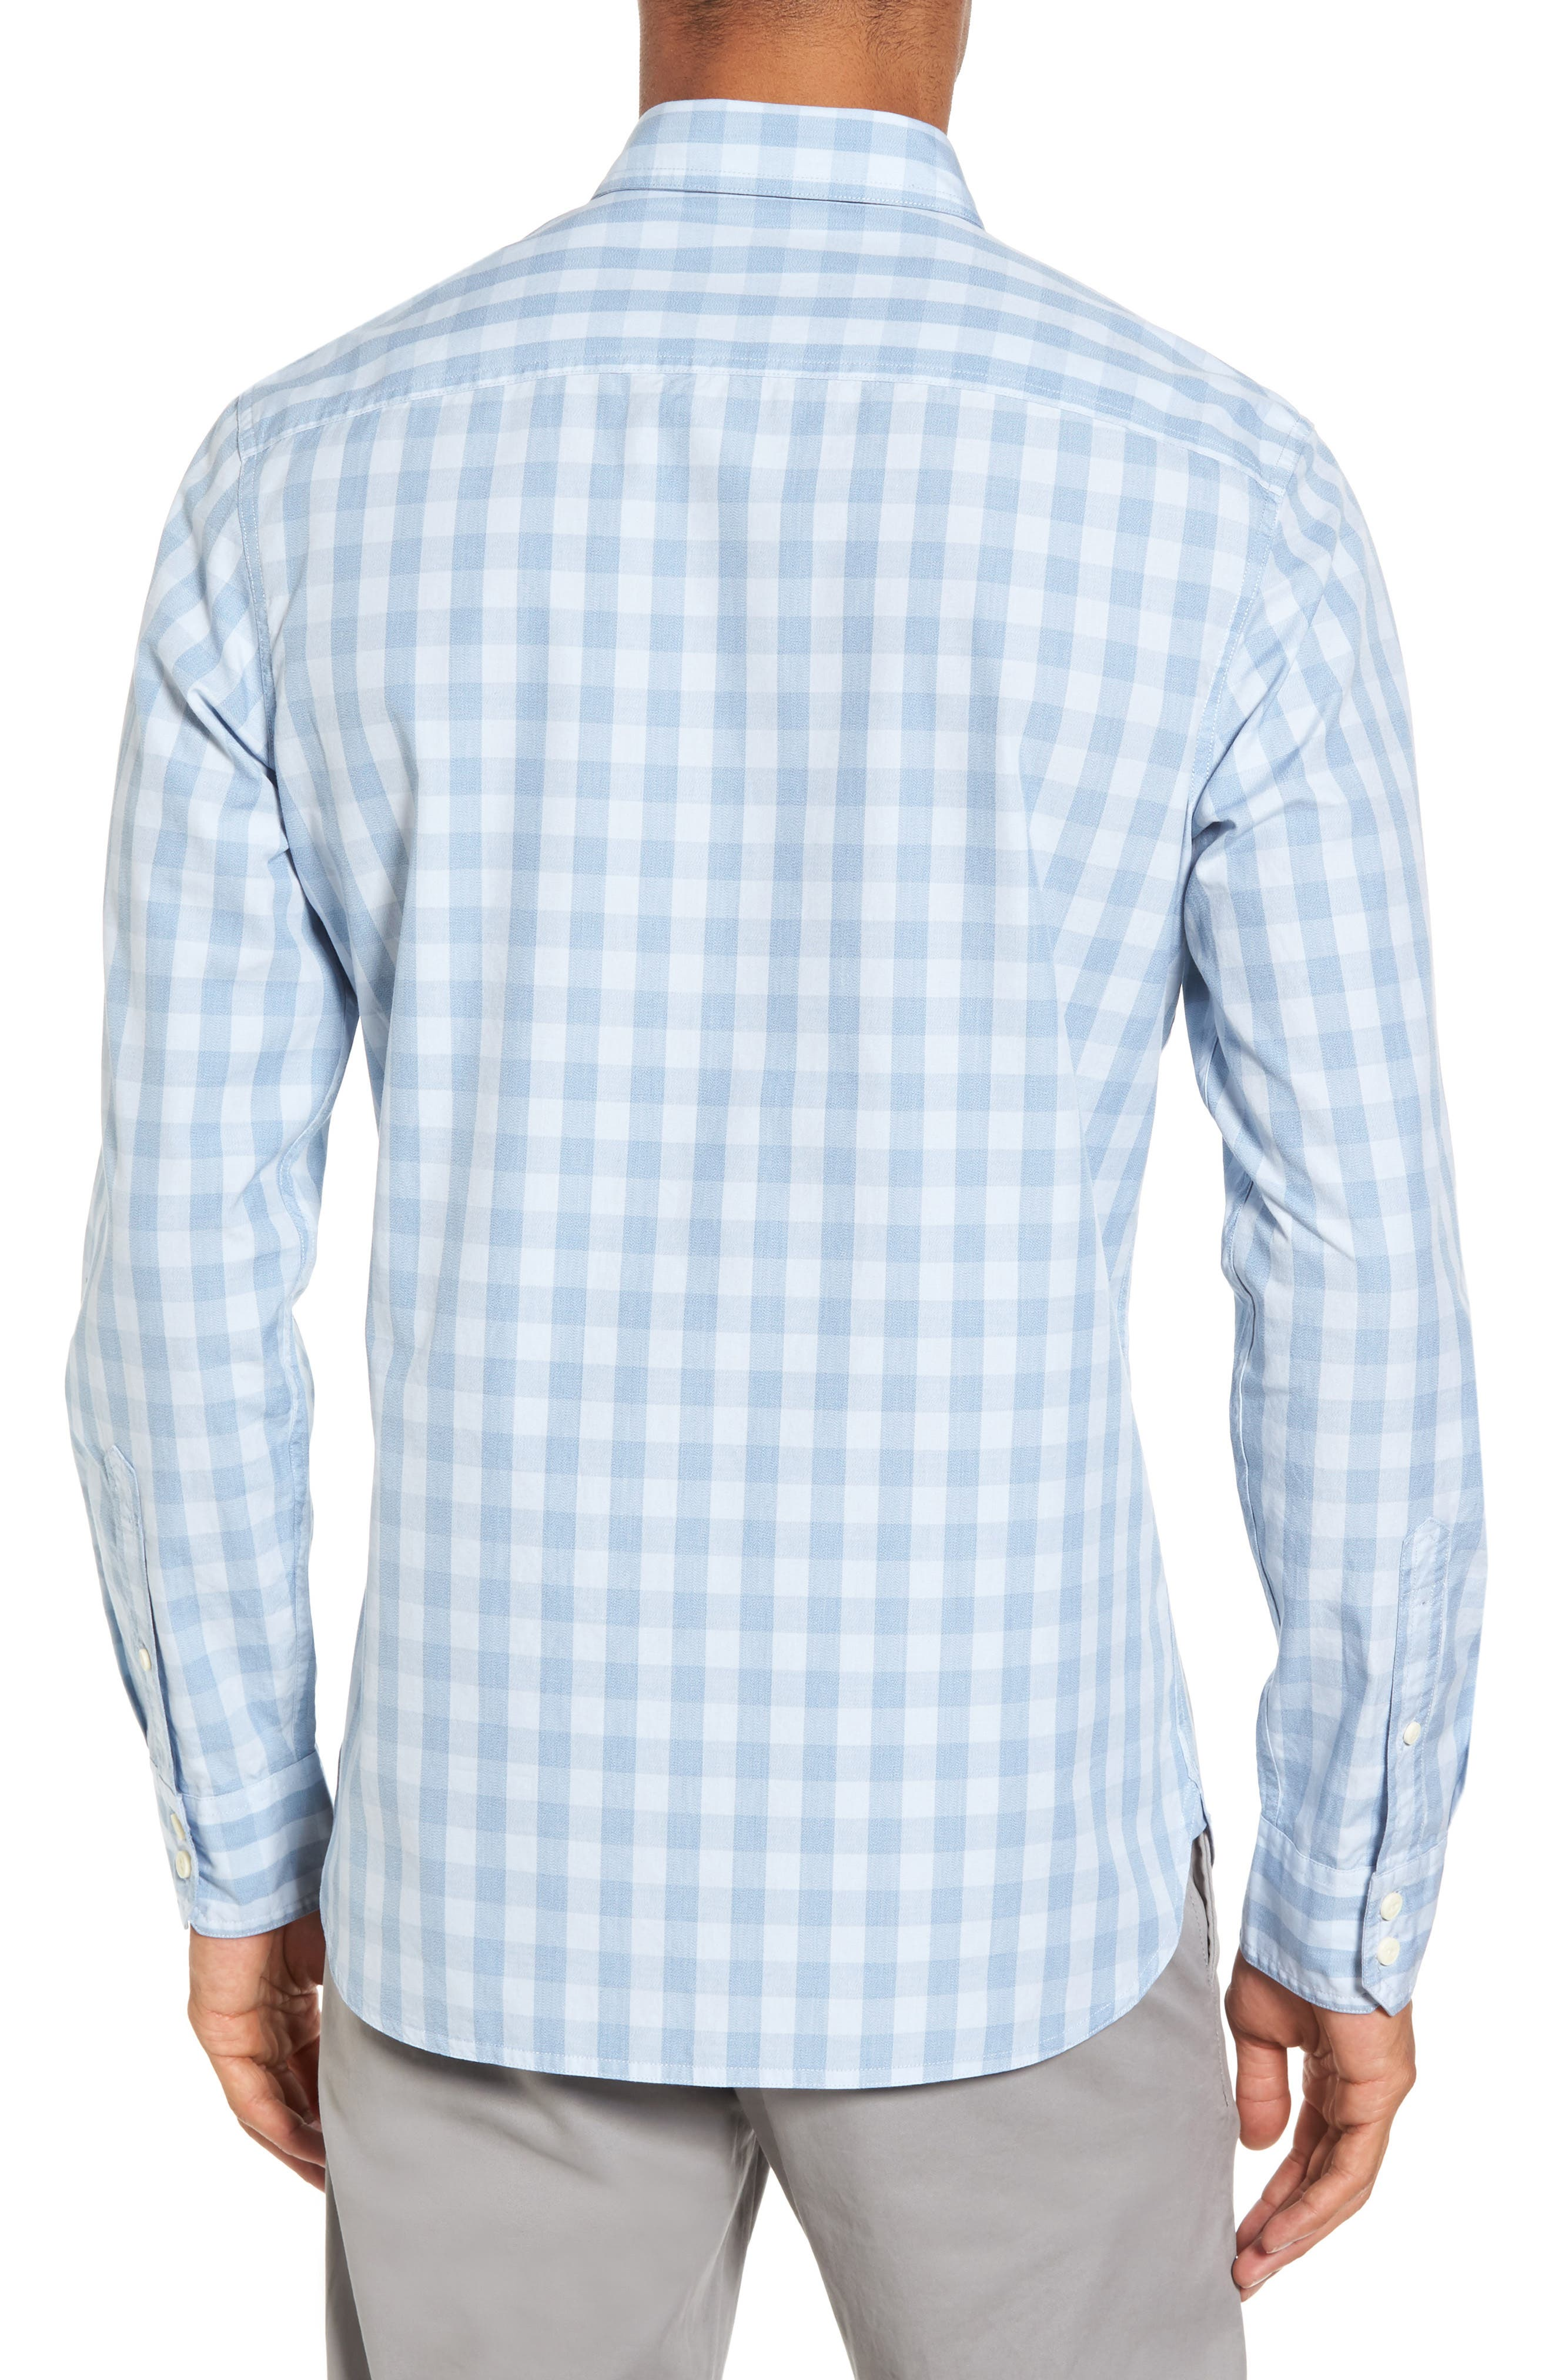 Trim Fit Washed Check Workwear Shirt,                             Alternate thumbnail 2, color,                             450